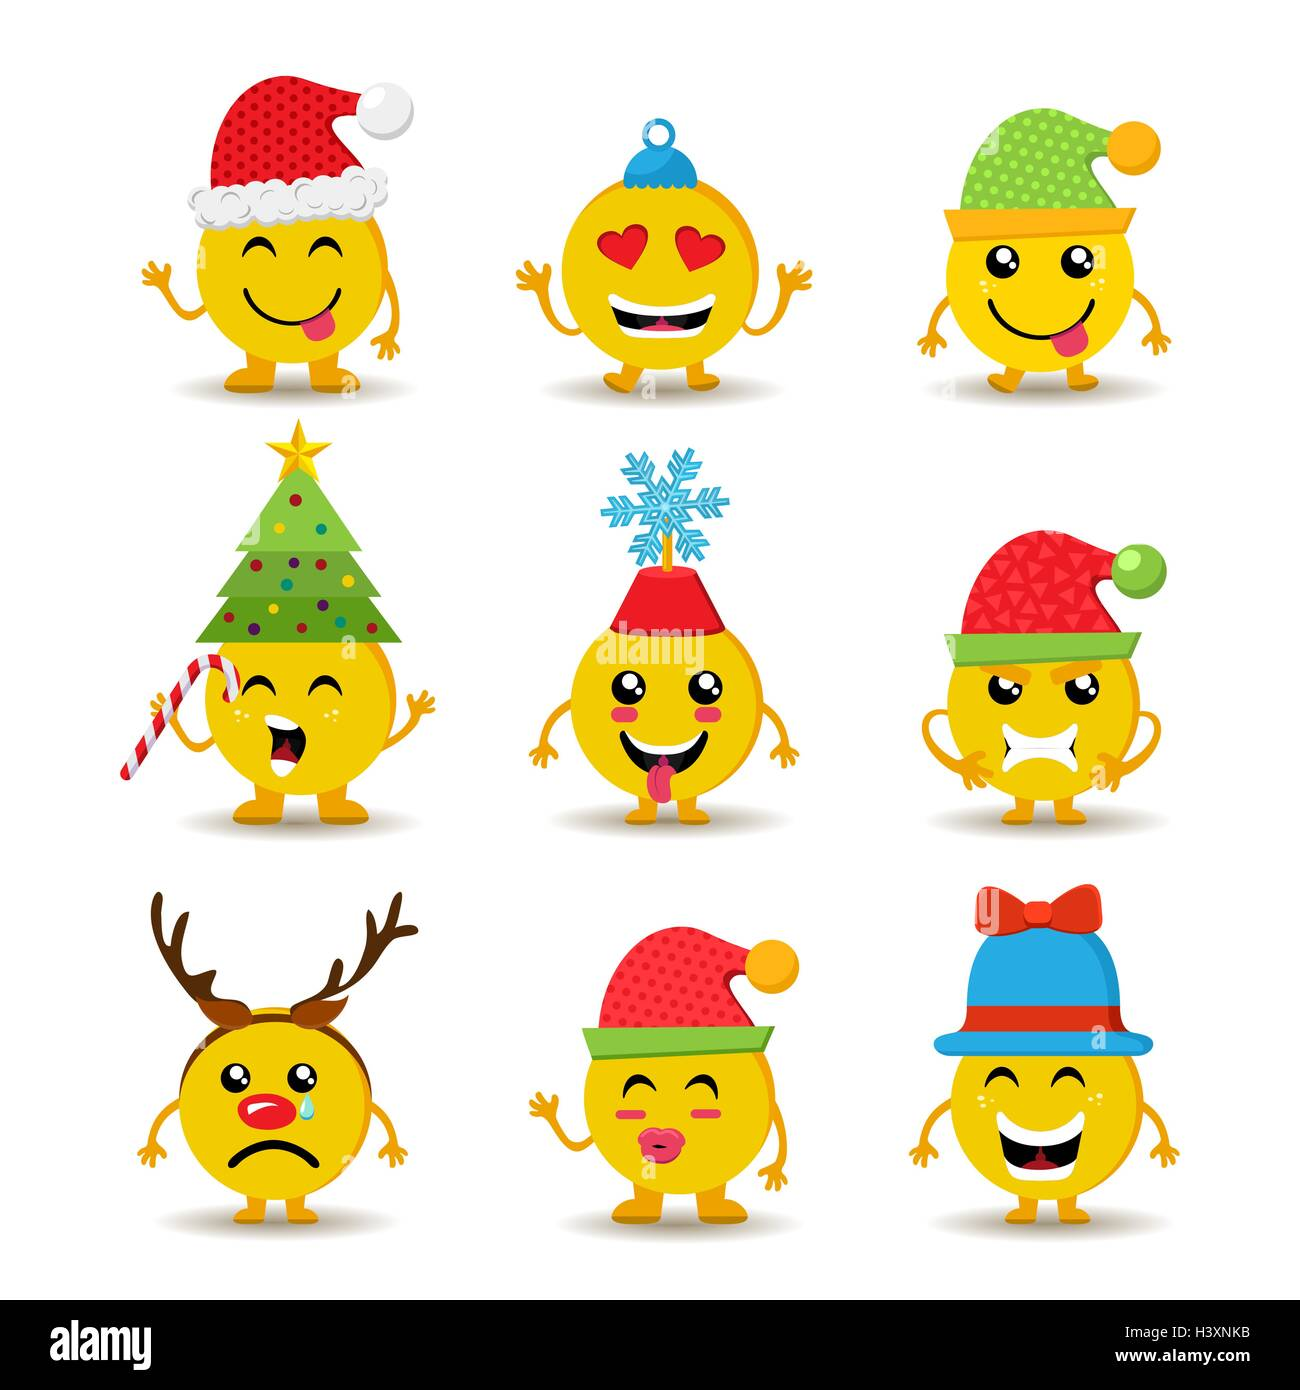 Christmas Emoji.Set Of Holiday Smiley Faces Christmas Emoji Icons With Cute